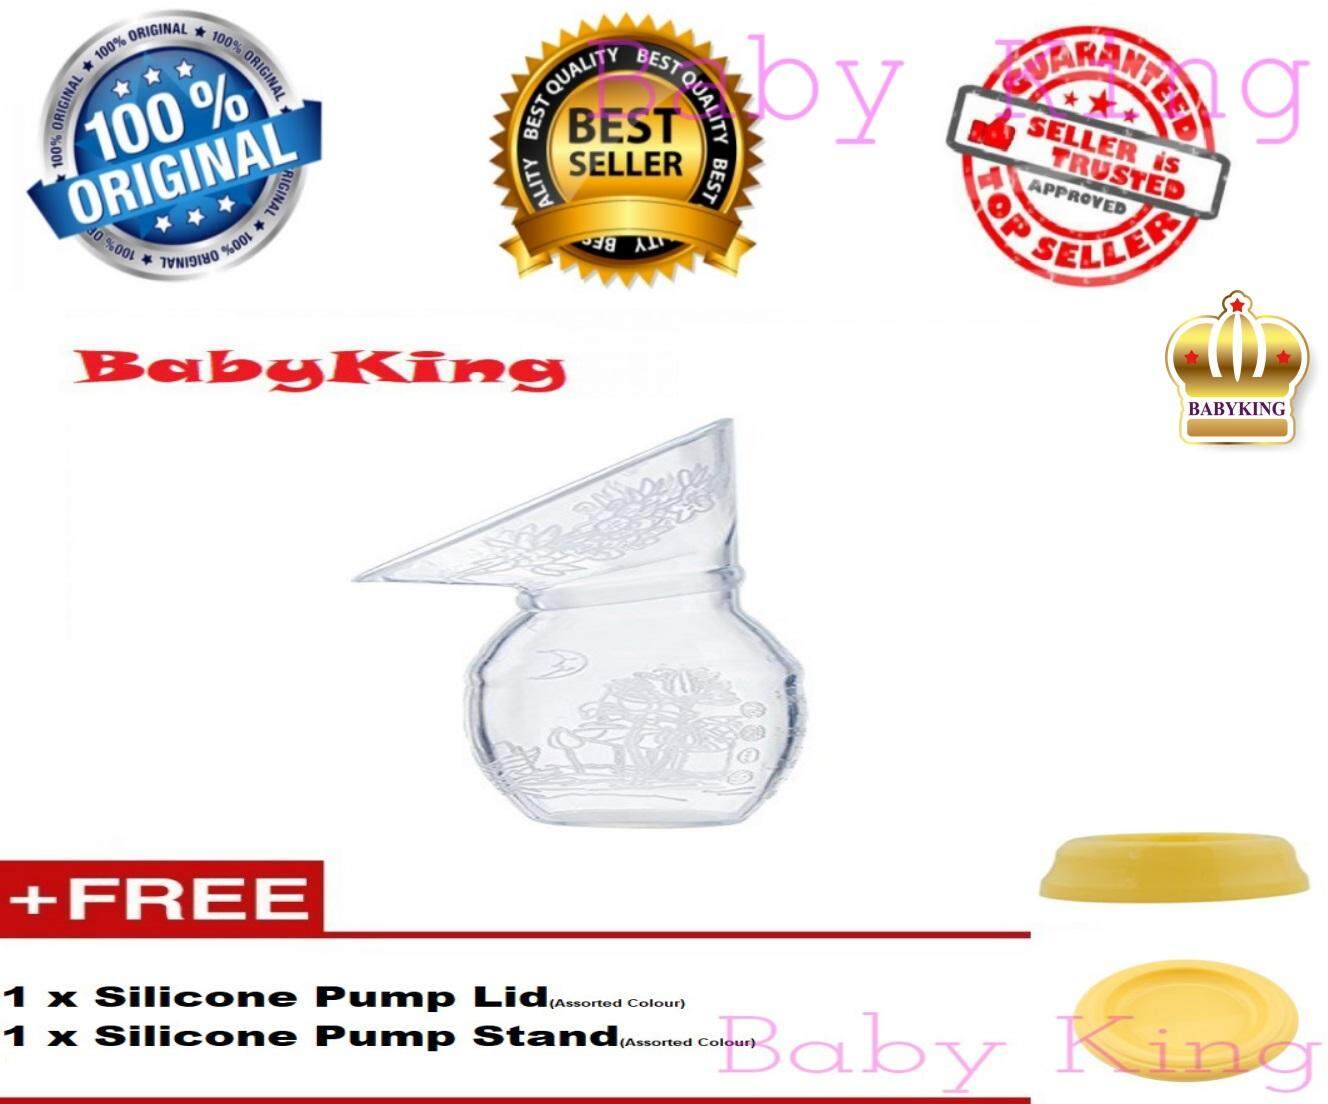 [flash Sale Clearance] Babyking Bpa-Free Silicone Portable Manual Breast Pump Breast Milk Collector With Lid And Stand By Baby King.